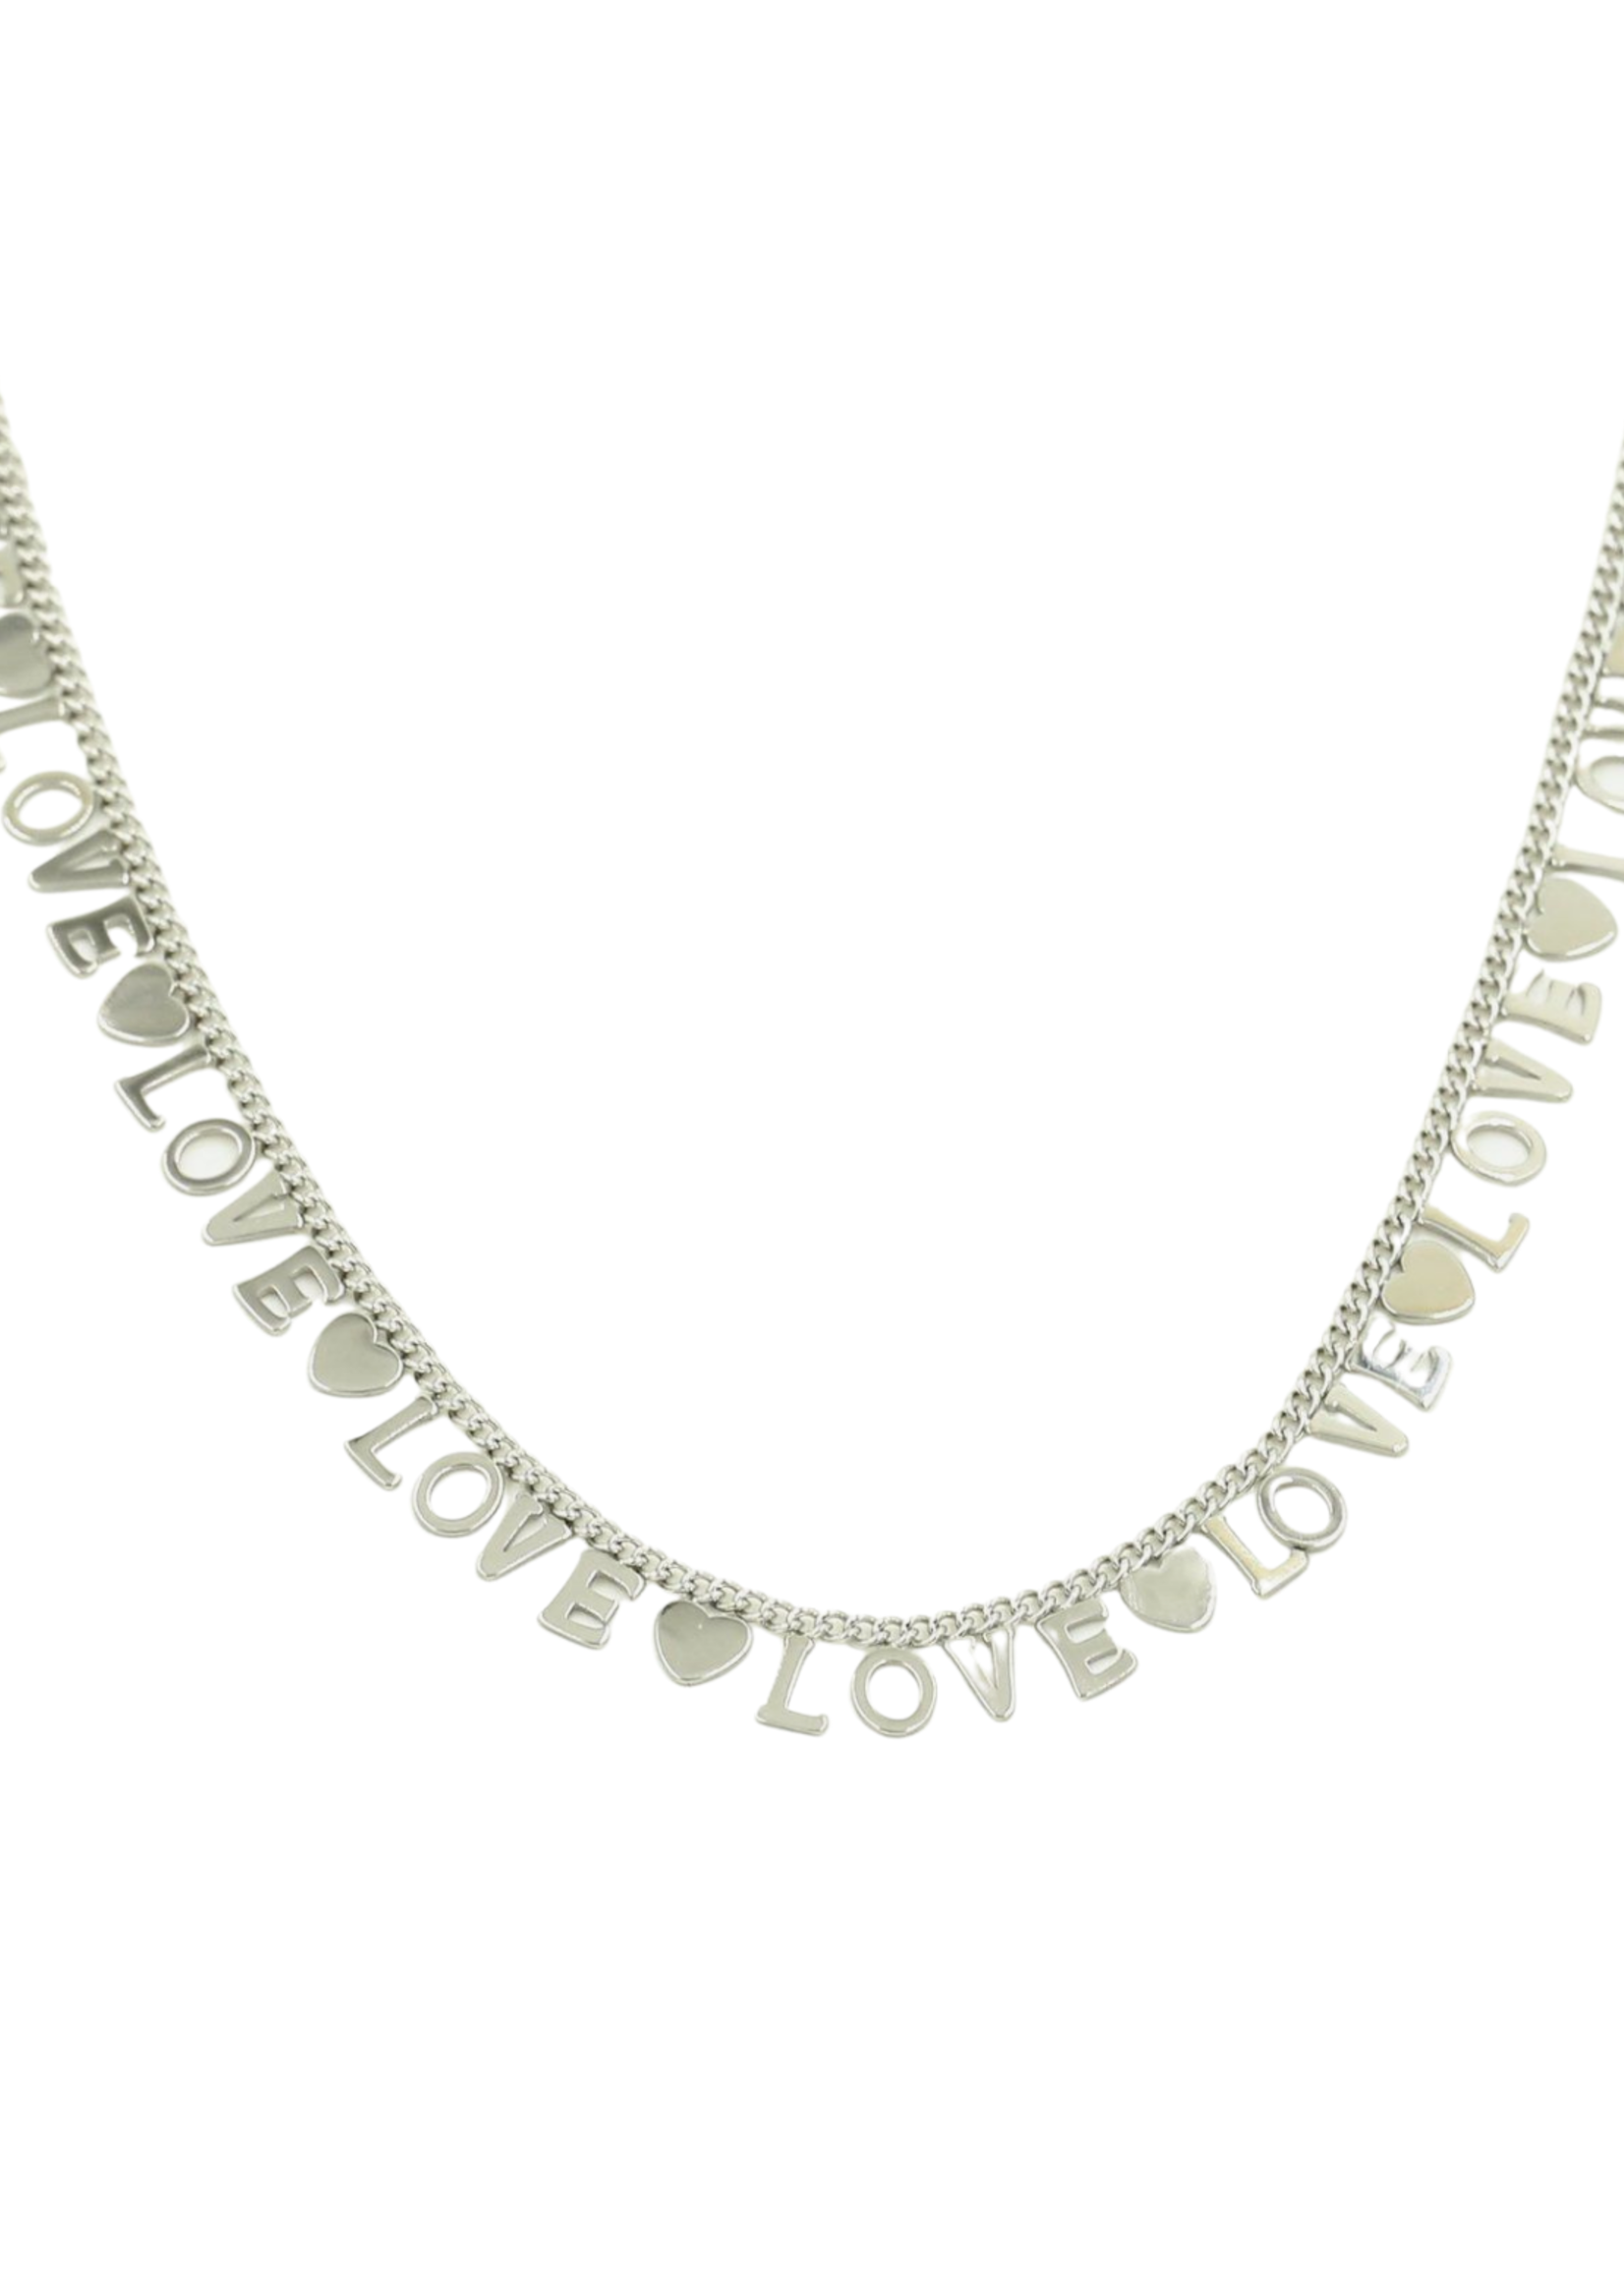 ENDLESS LOVE KETTING ZILVER